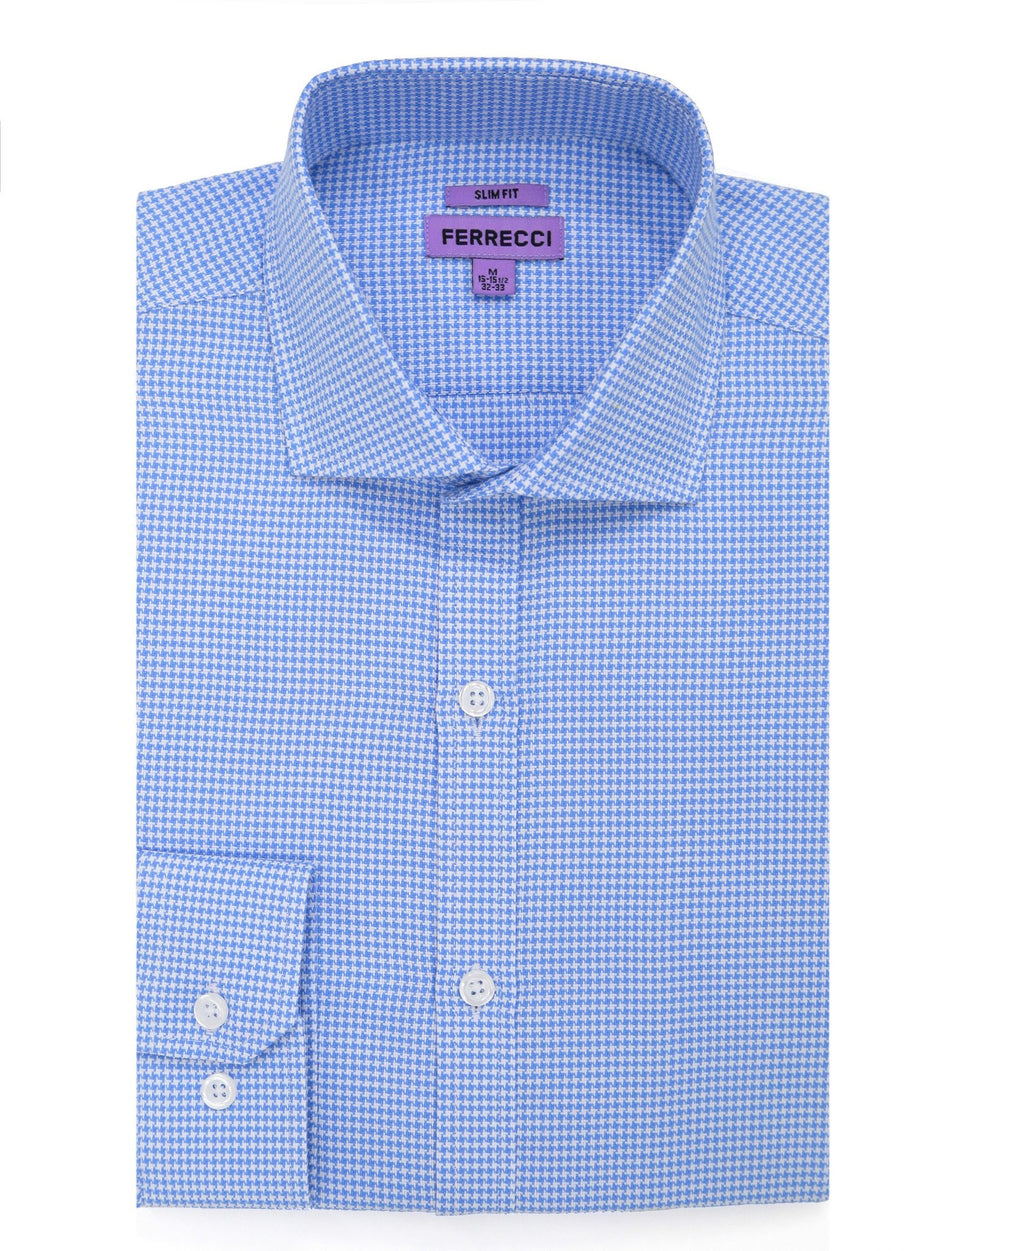 The Knox Slim Fit Cotton Dress Shirt - Giorgio's Menswear